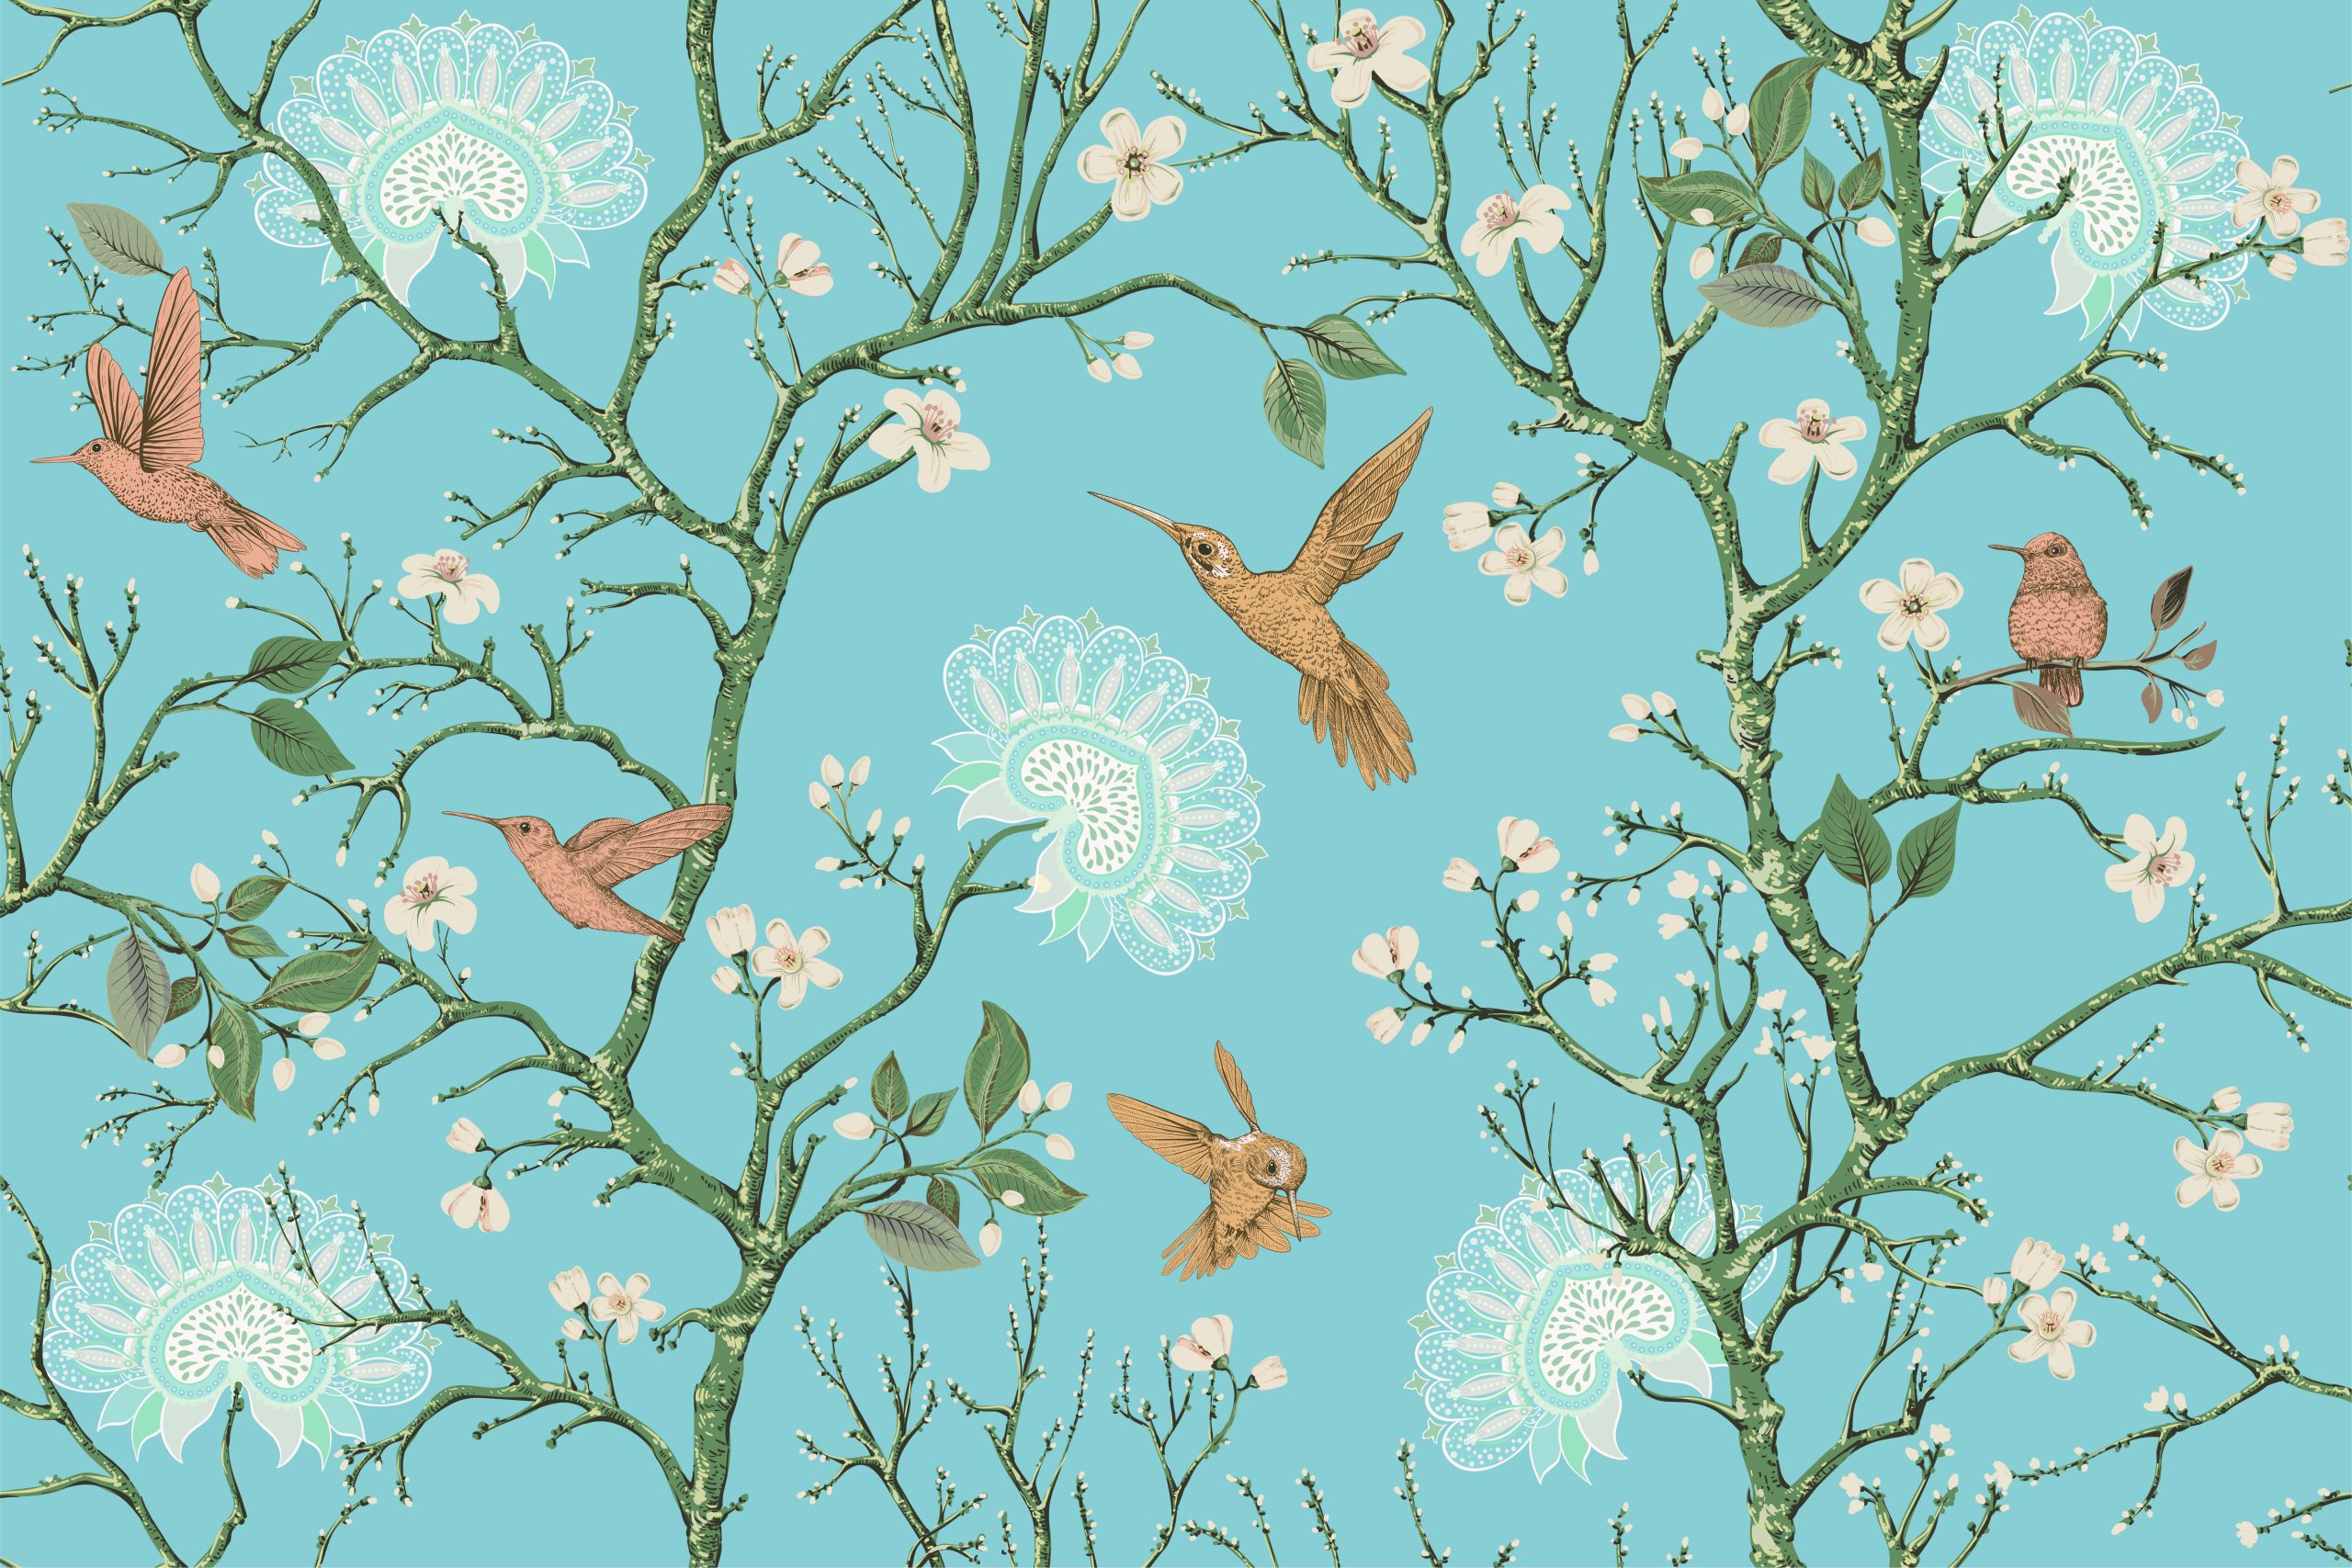 Vector colorful pattern with birds and flowers. Hummingbirds and flowers, retro style, floral backdrop. Spring, summer flower design for wrapping paper, cover, textile, fabric, wallpaper, web